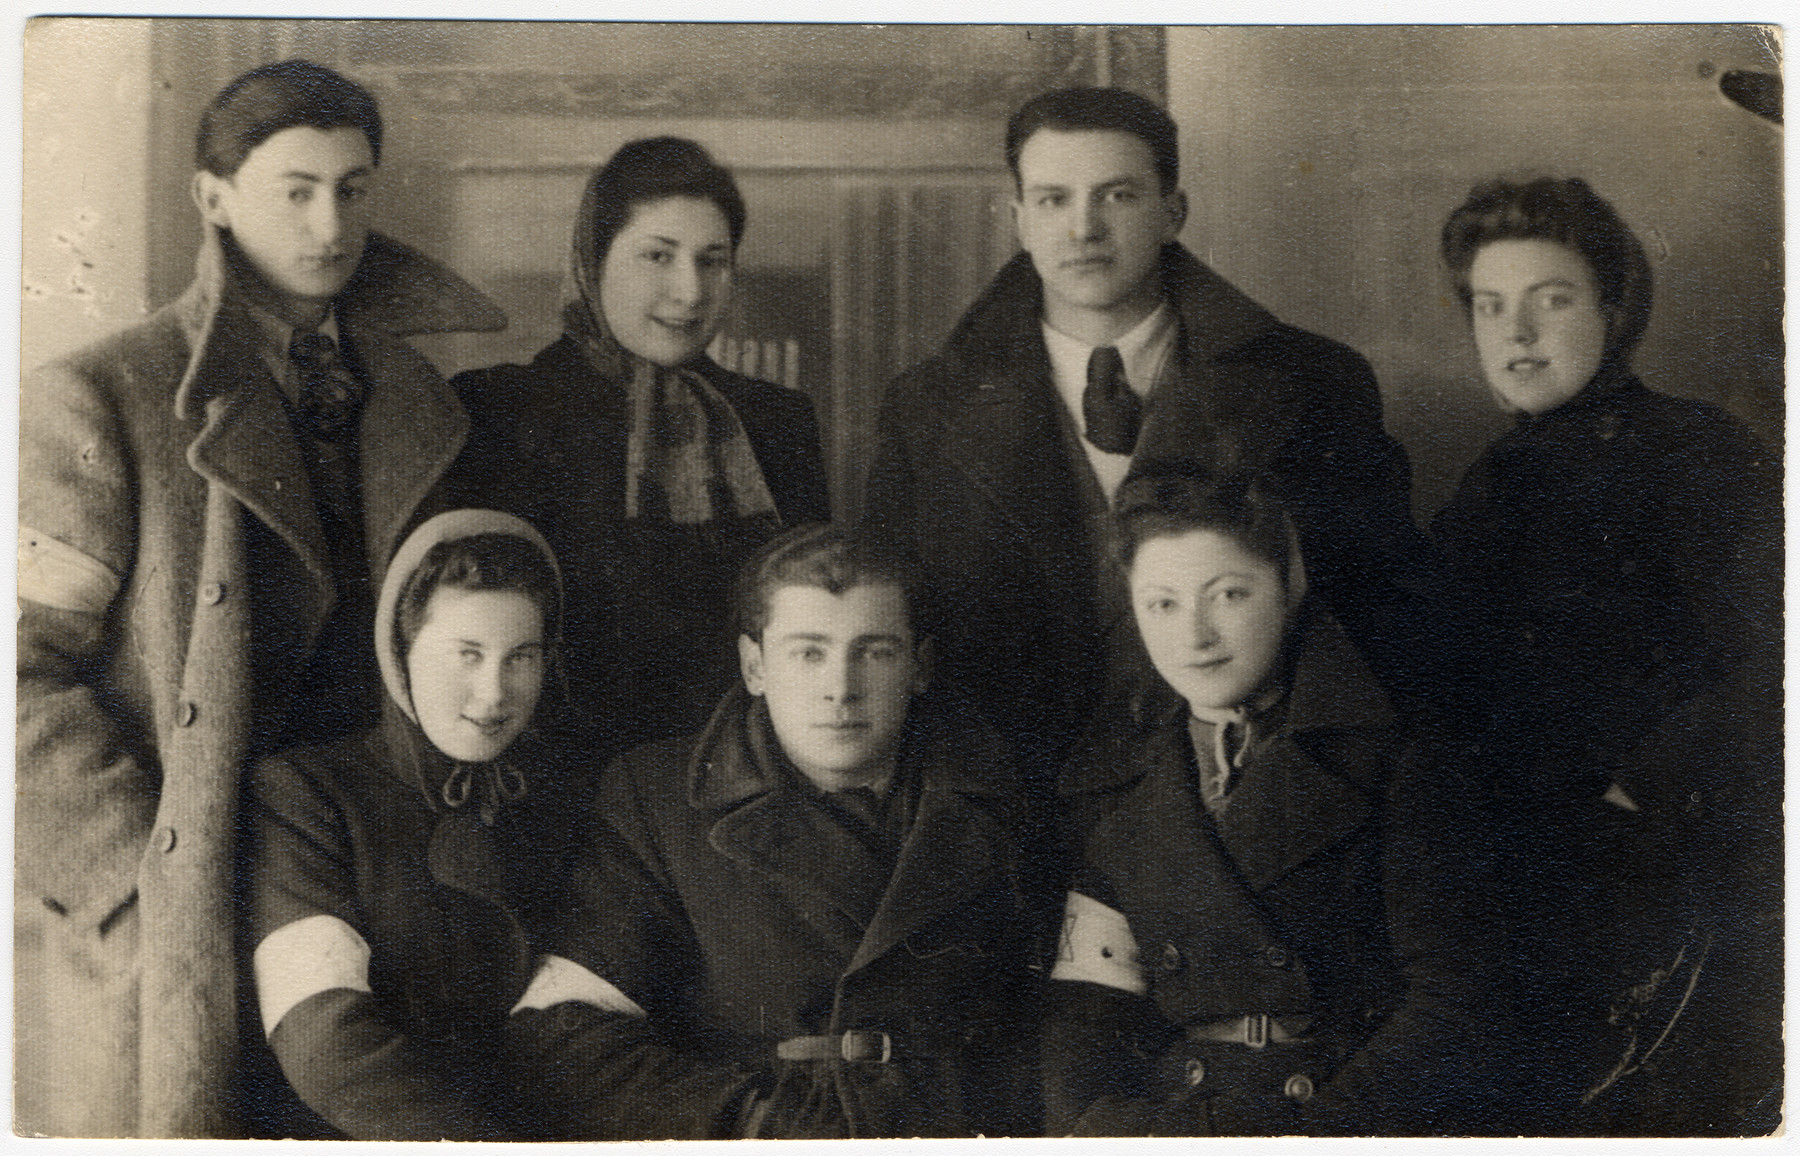 Group portrait of Jewish youth in the Bolechow ghetto.   Pictured standing from the left are: Simon Weiss, Lila Berger, Bumek Josefsberg and the donor's sister, Musia Adler.  Sitting, from the left, are: Bela Altman, unknown and Dyzia Lew.